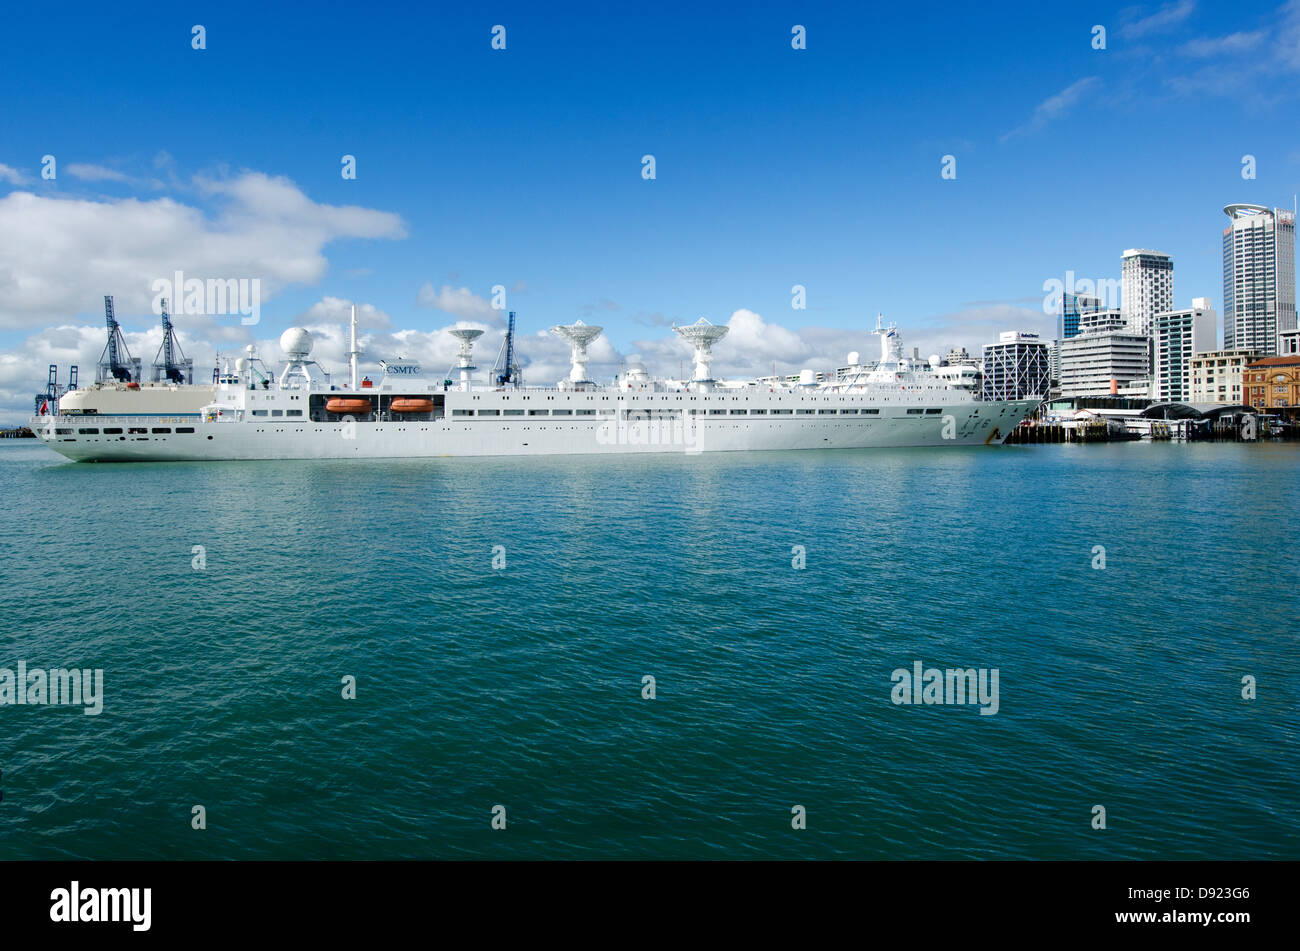 The Yuan Wang 6 berthed Chinese navy ship used to track spacecraft and missile berthed in Auckland City Port, New - Stock Image